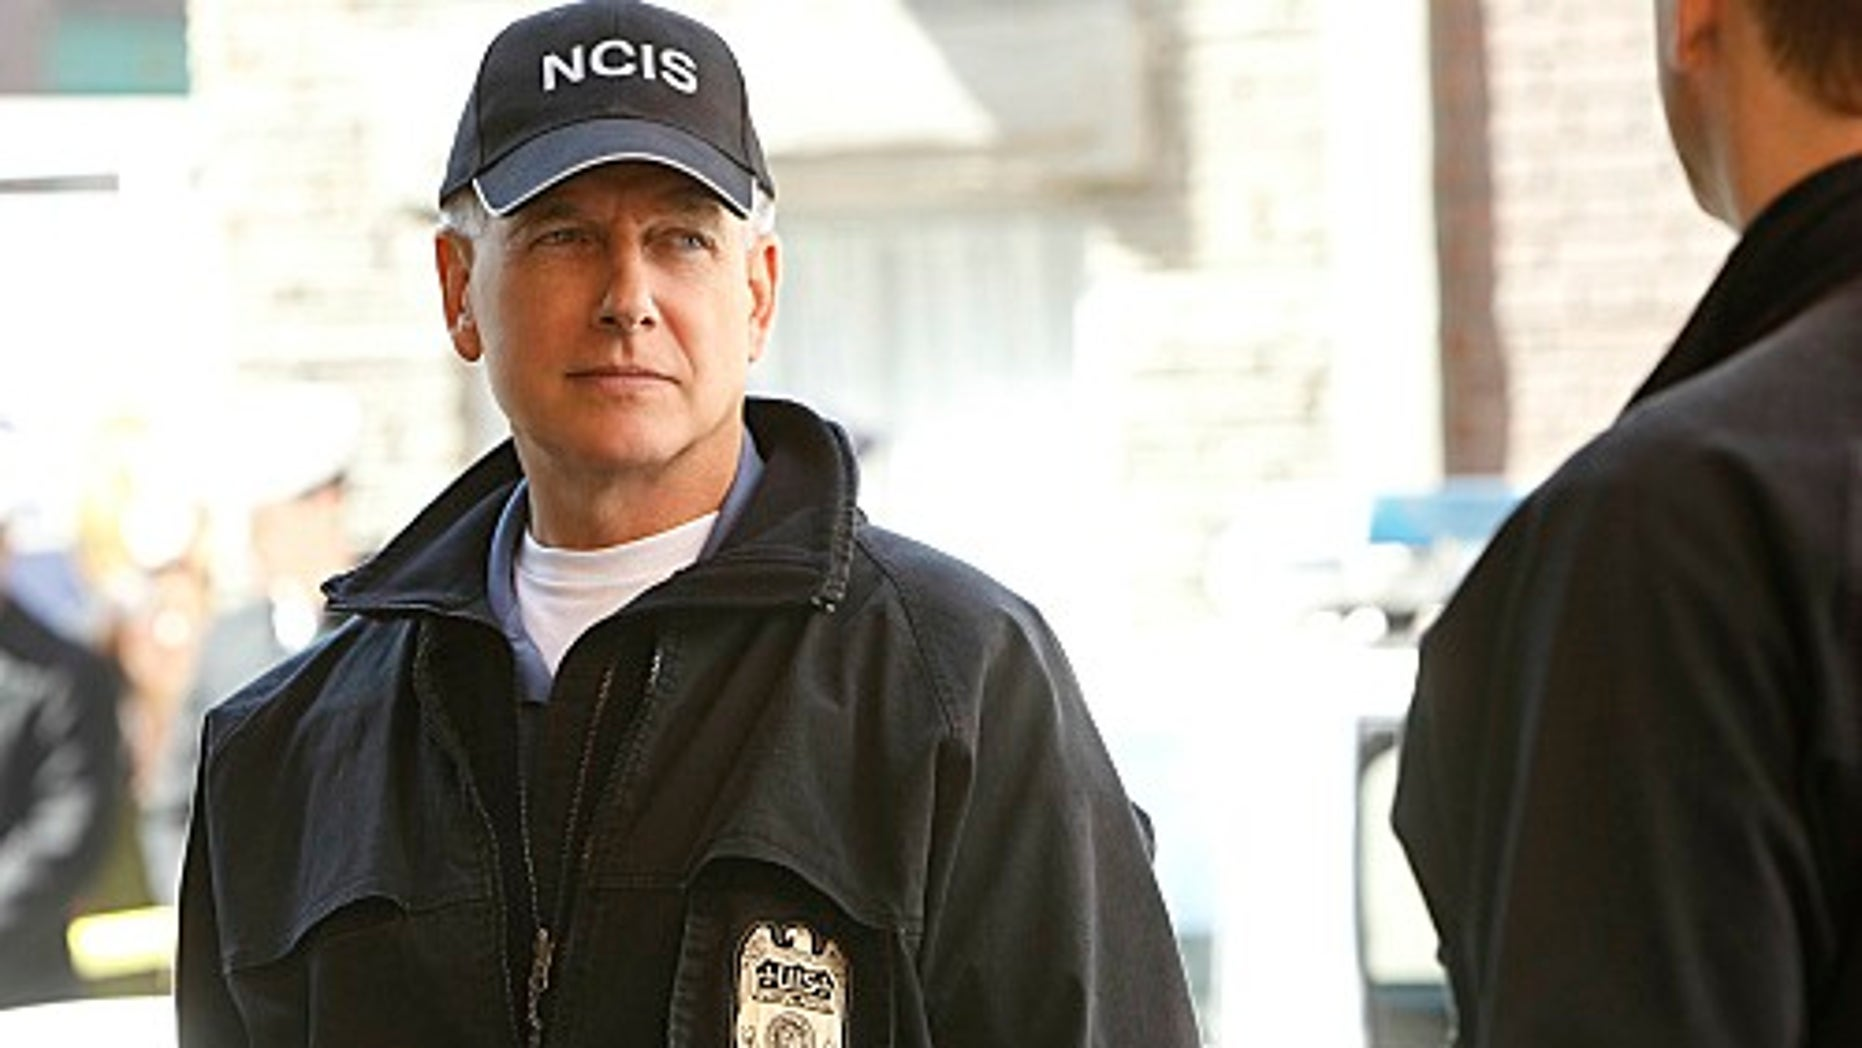 """""""The Good Son""""-- Director Vance's brother-in-law is the lead suspect when Gibbs (Mark Harmon, pictured) and the NCIS team investigate the murder of a petty officer, on NCIS, Tuesday, March 27 (8:00-9:00 PM, ET/PT) on the CBS Television Network.  Photo: Cliff Lipson/CBS ©2012 CBS Broadcasting Inc. All Rights Reserved."""